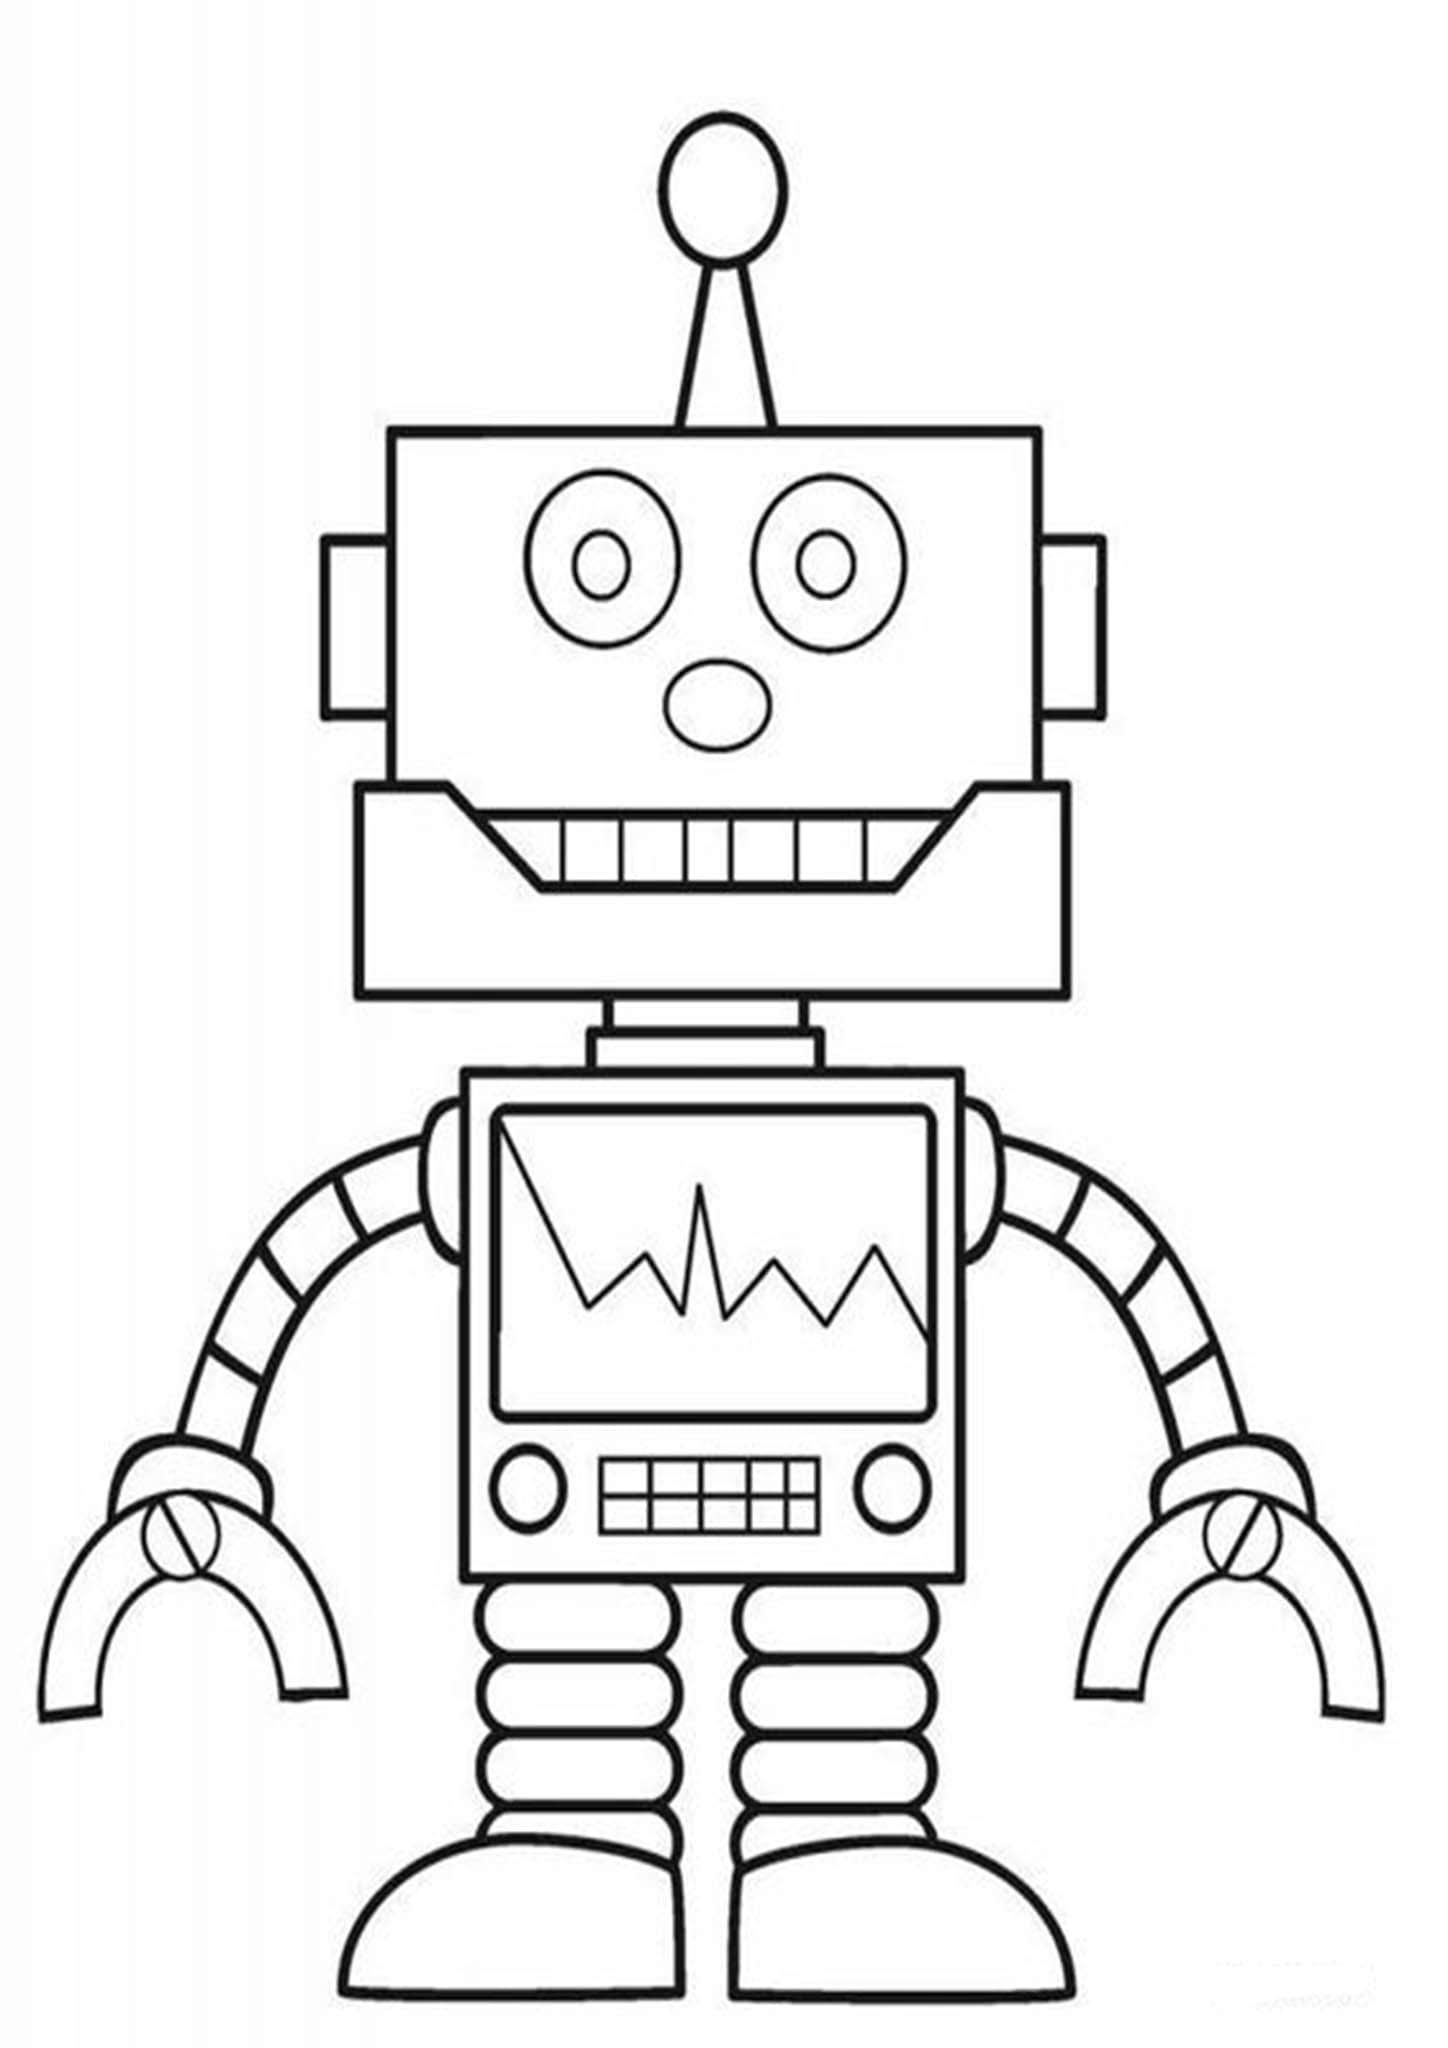 Free Easy To Print Robot Coloring Pages Free Kids Coloring Pages Printables Free Kids Free Coloring Pages